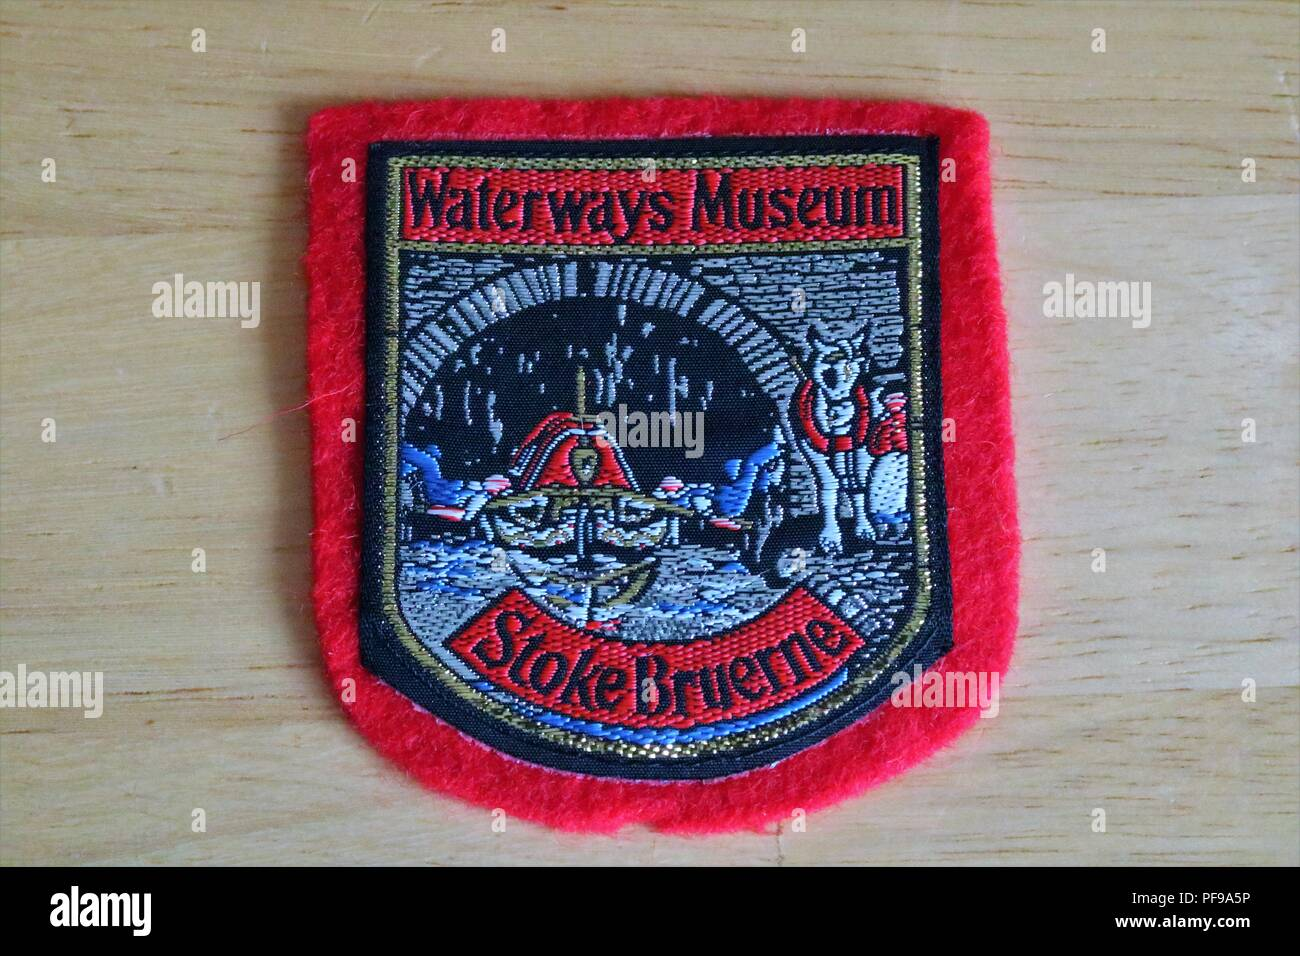 Waterways Museum Stoke Bruerne fabric patch showing canal scene - Stock Image